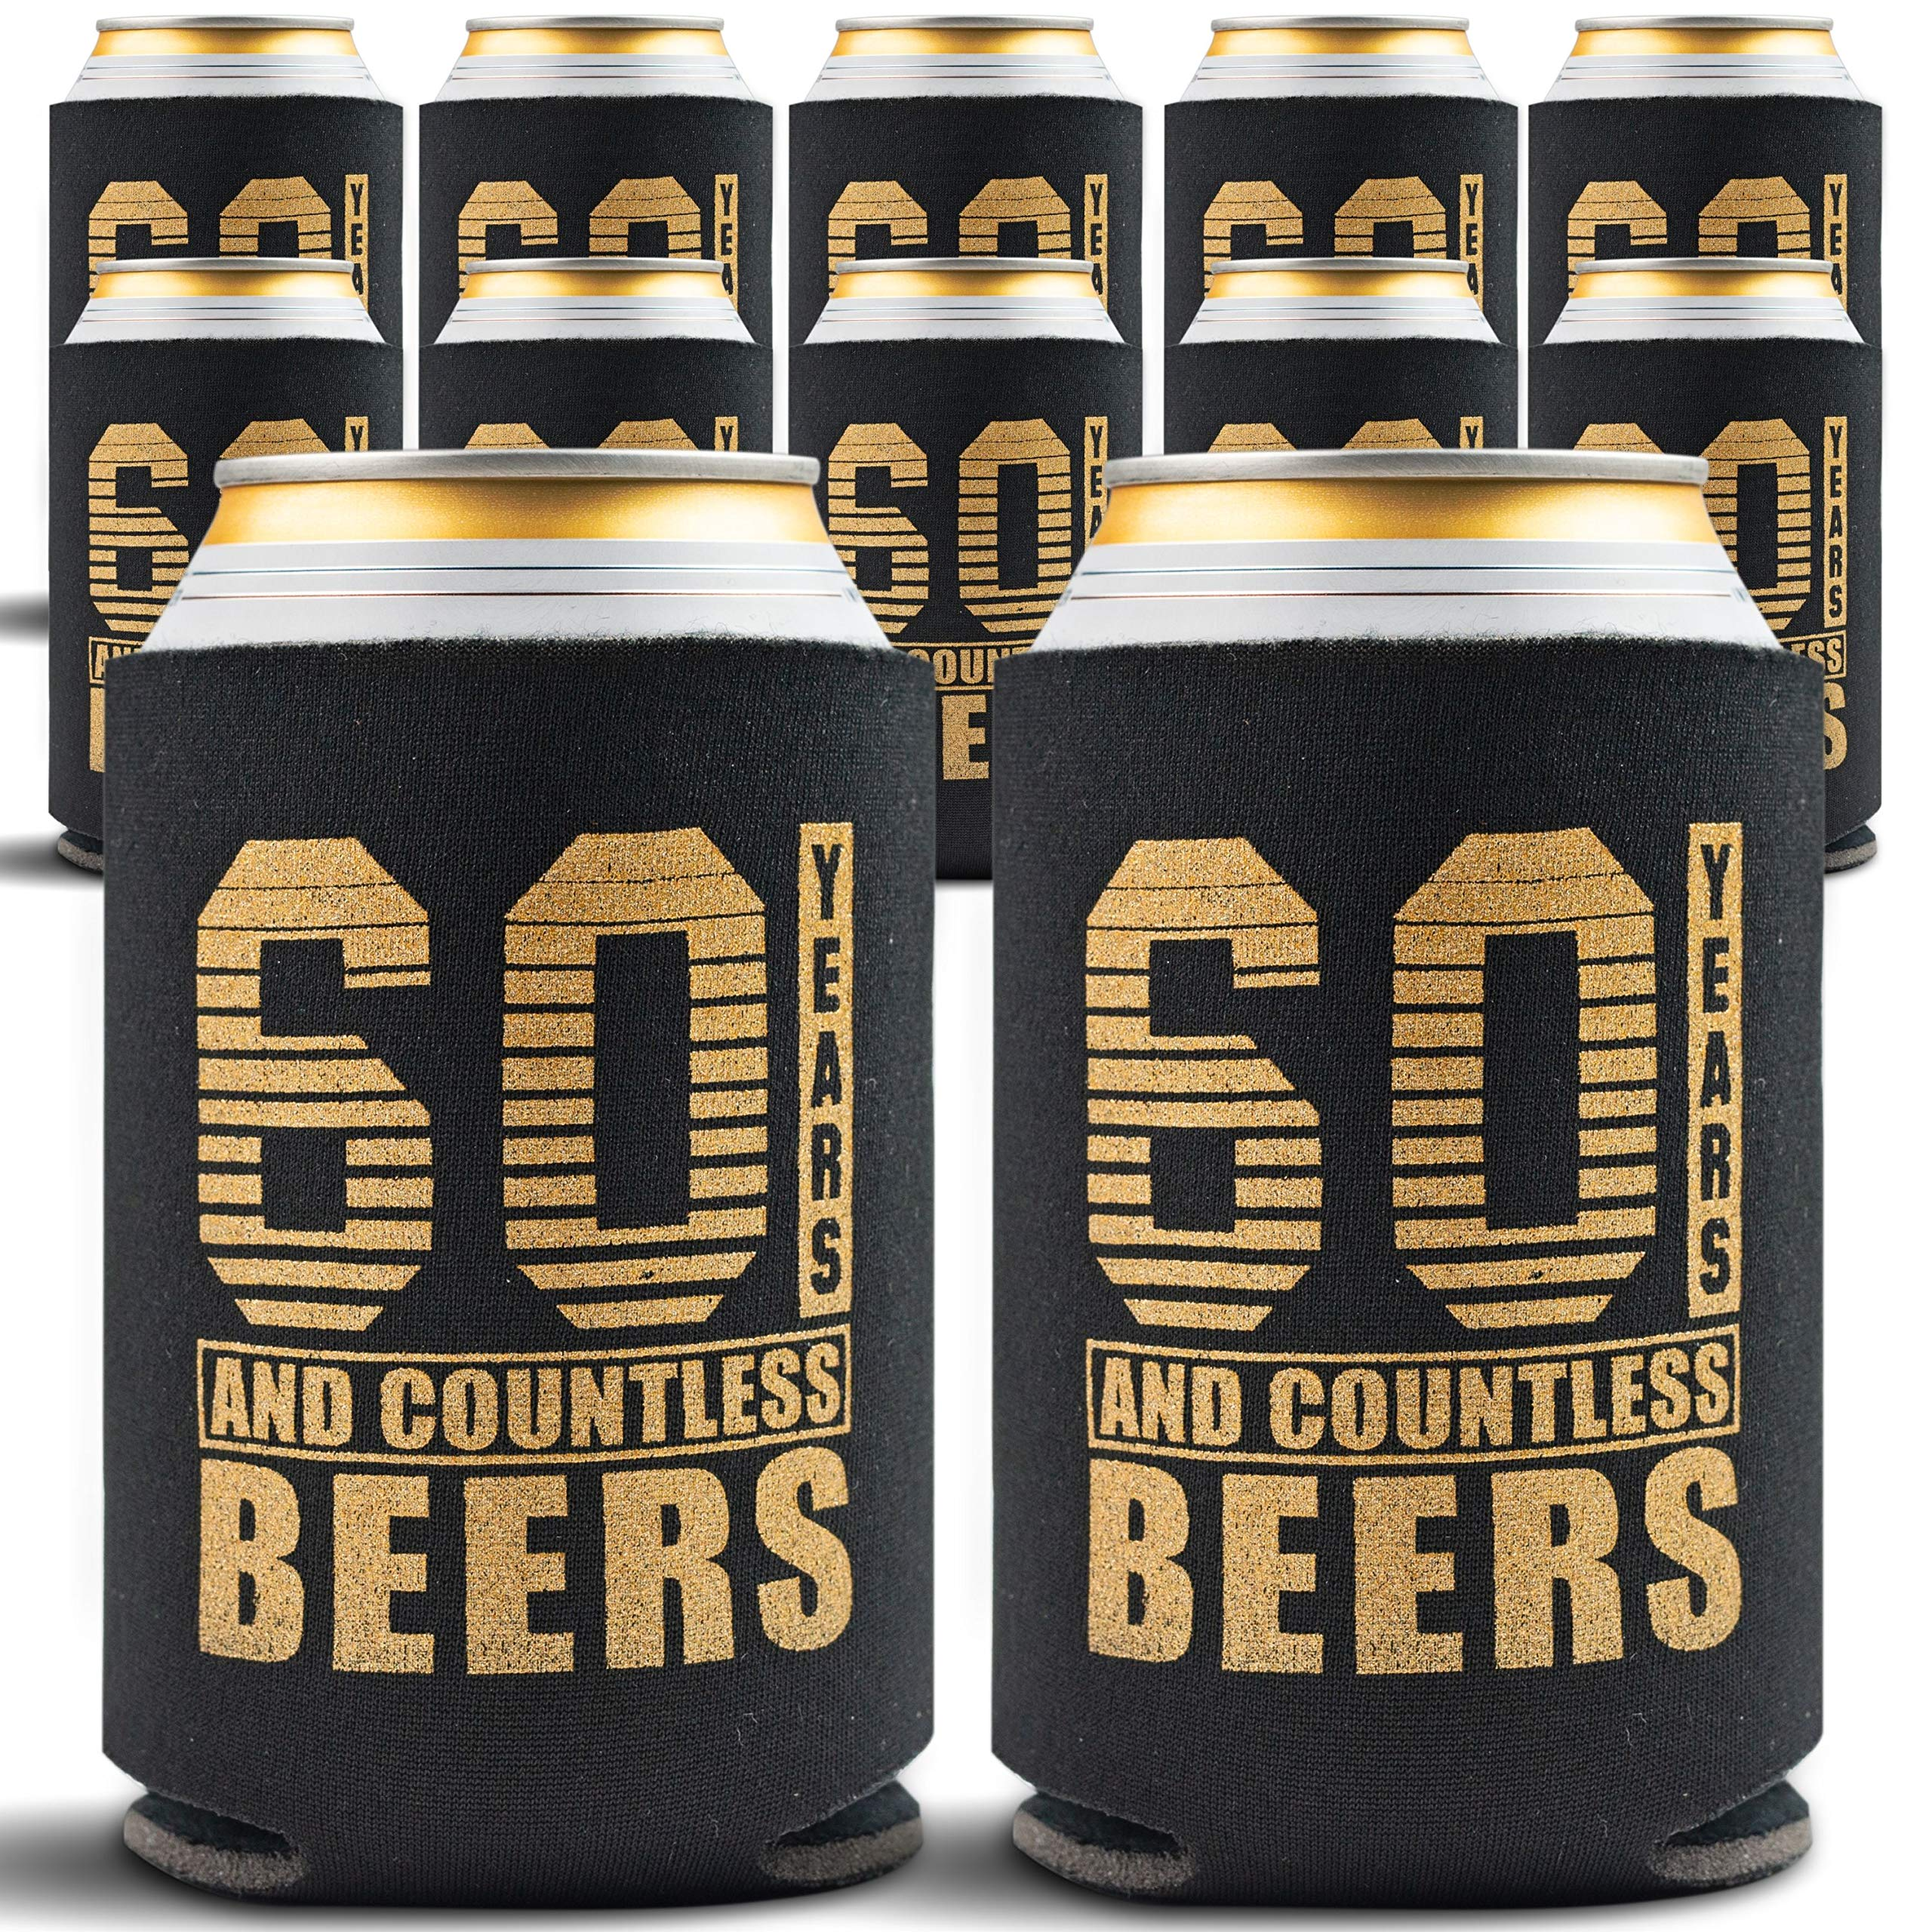 60th Birthday Decorations for Men - 12-Pack Party Can Coolers - 60th Birthday Gifts for Women - 60th Birthday Gift Ideas Beer Sleeve, 12 Insulated Sleeves, 60th Birthday Gifts for Men, Black and Gold by Gold Coastal